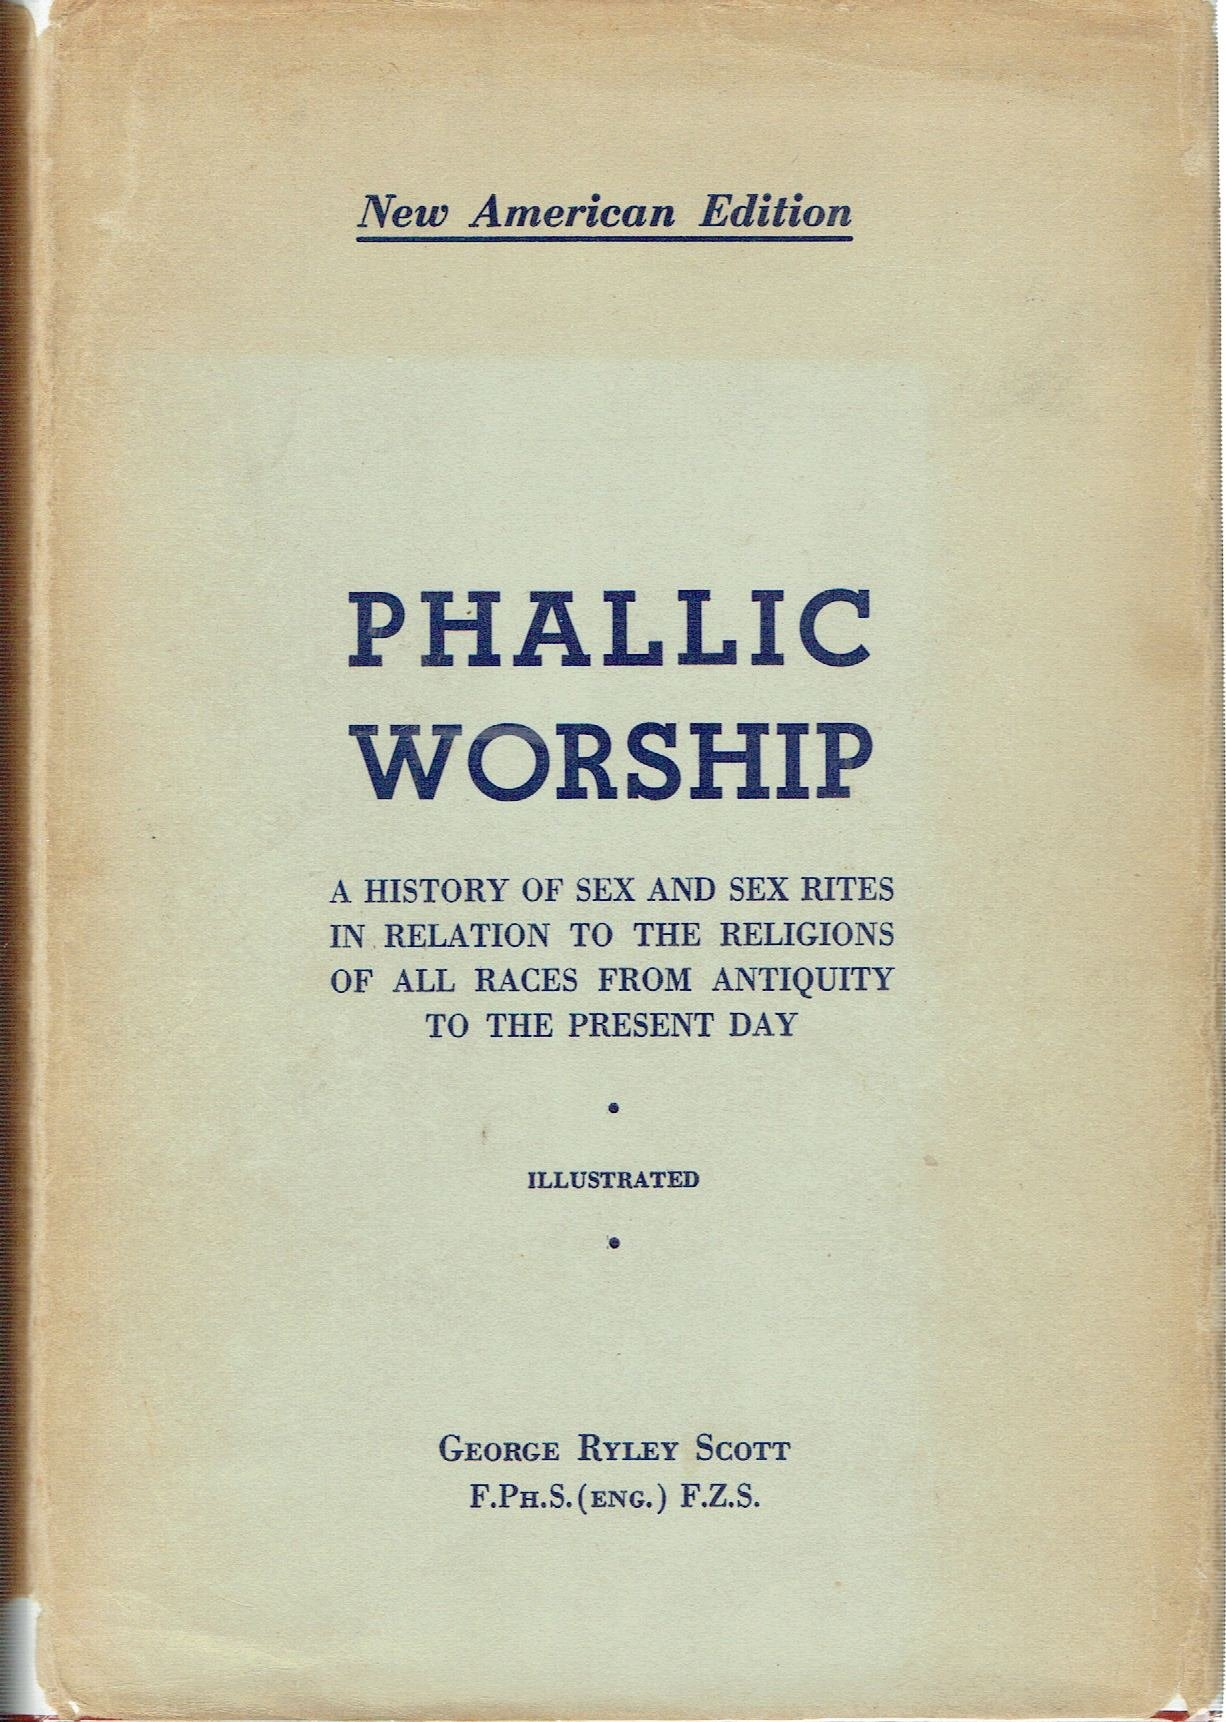 The Phallic Worship. A History of Sex and Sex Rites in relation to the Religions of All Races from Antiquity to the Present Day